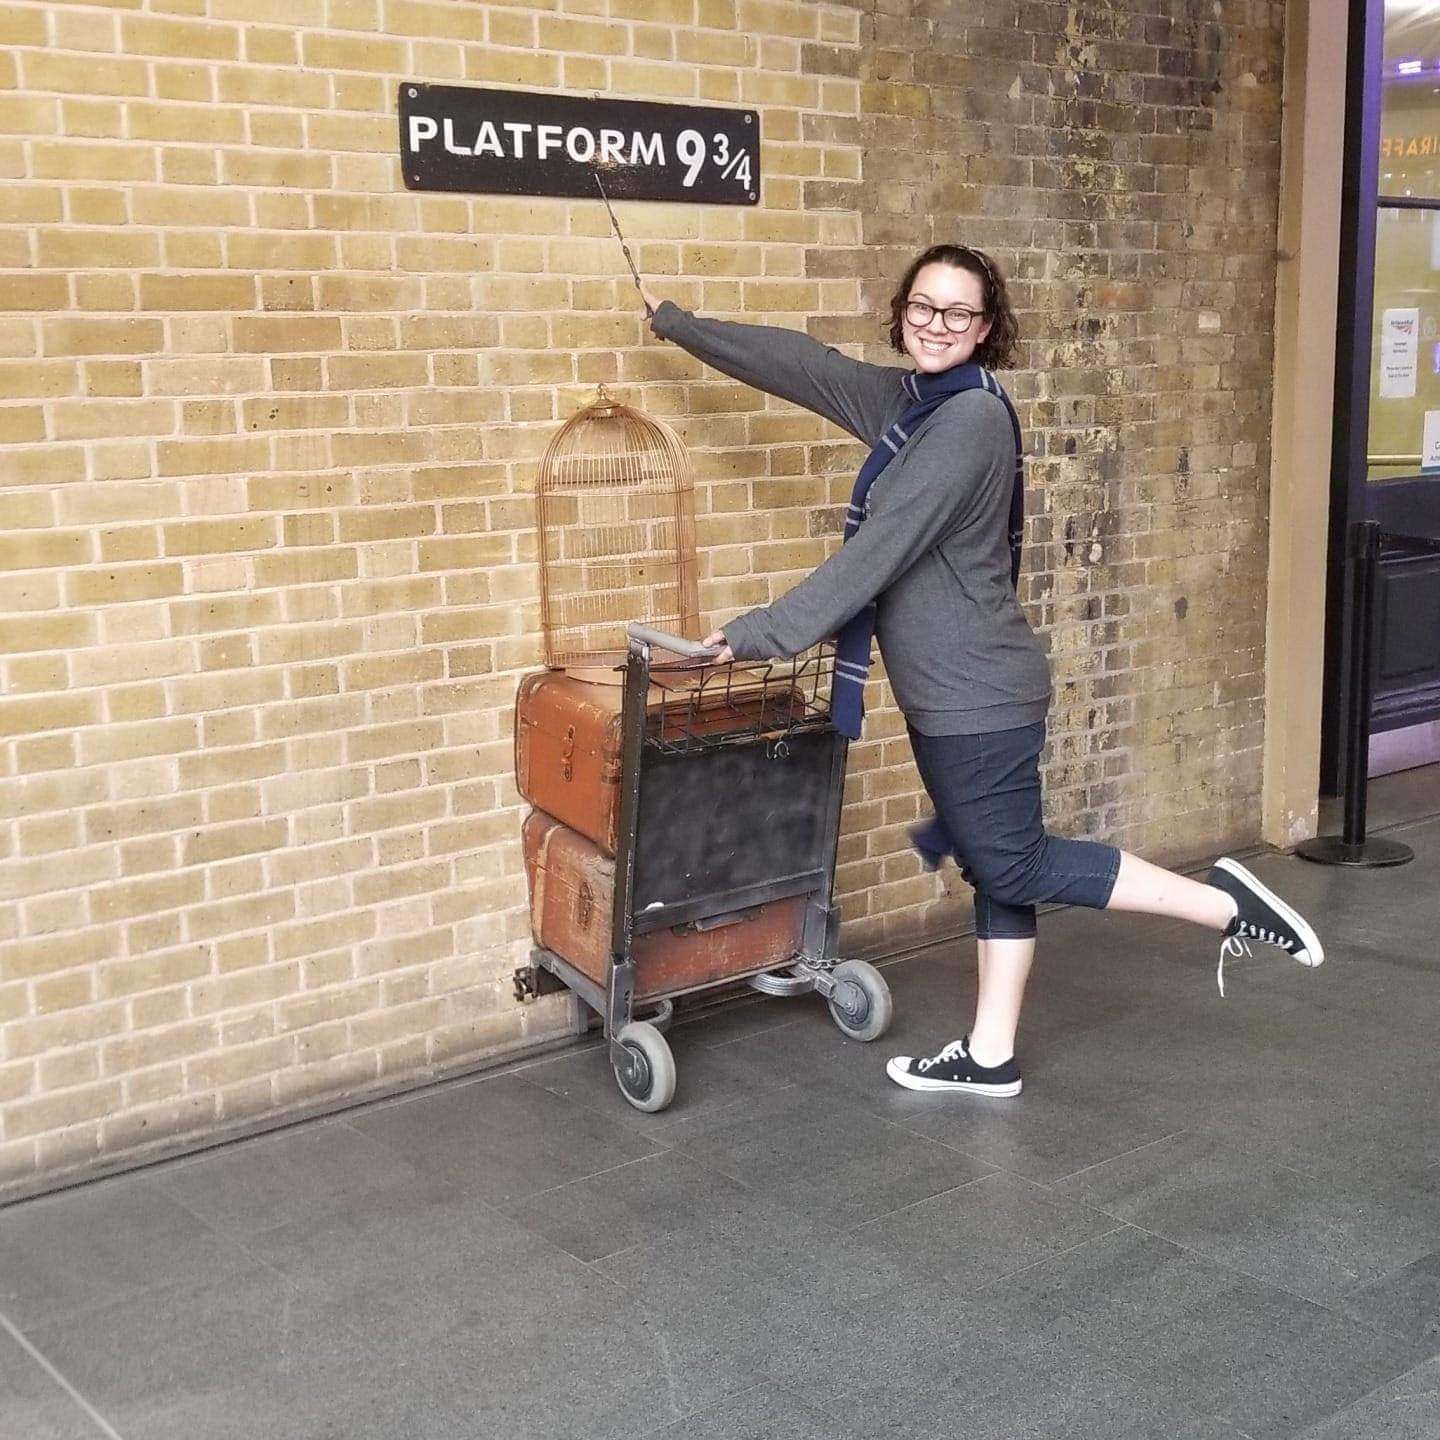 [This is me visiting Platform 9 and 3/4 in London, England in July 2018! I fell in love with London and am always planning my next trip abroad.]